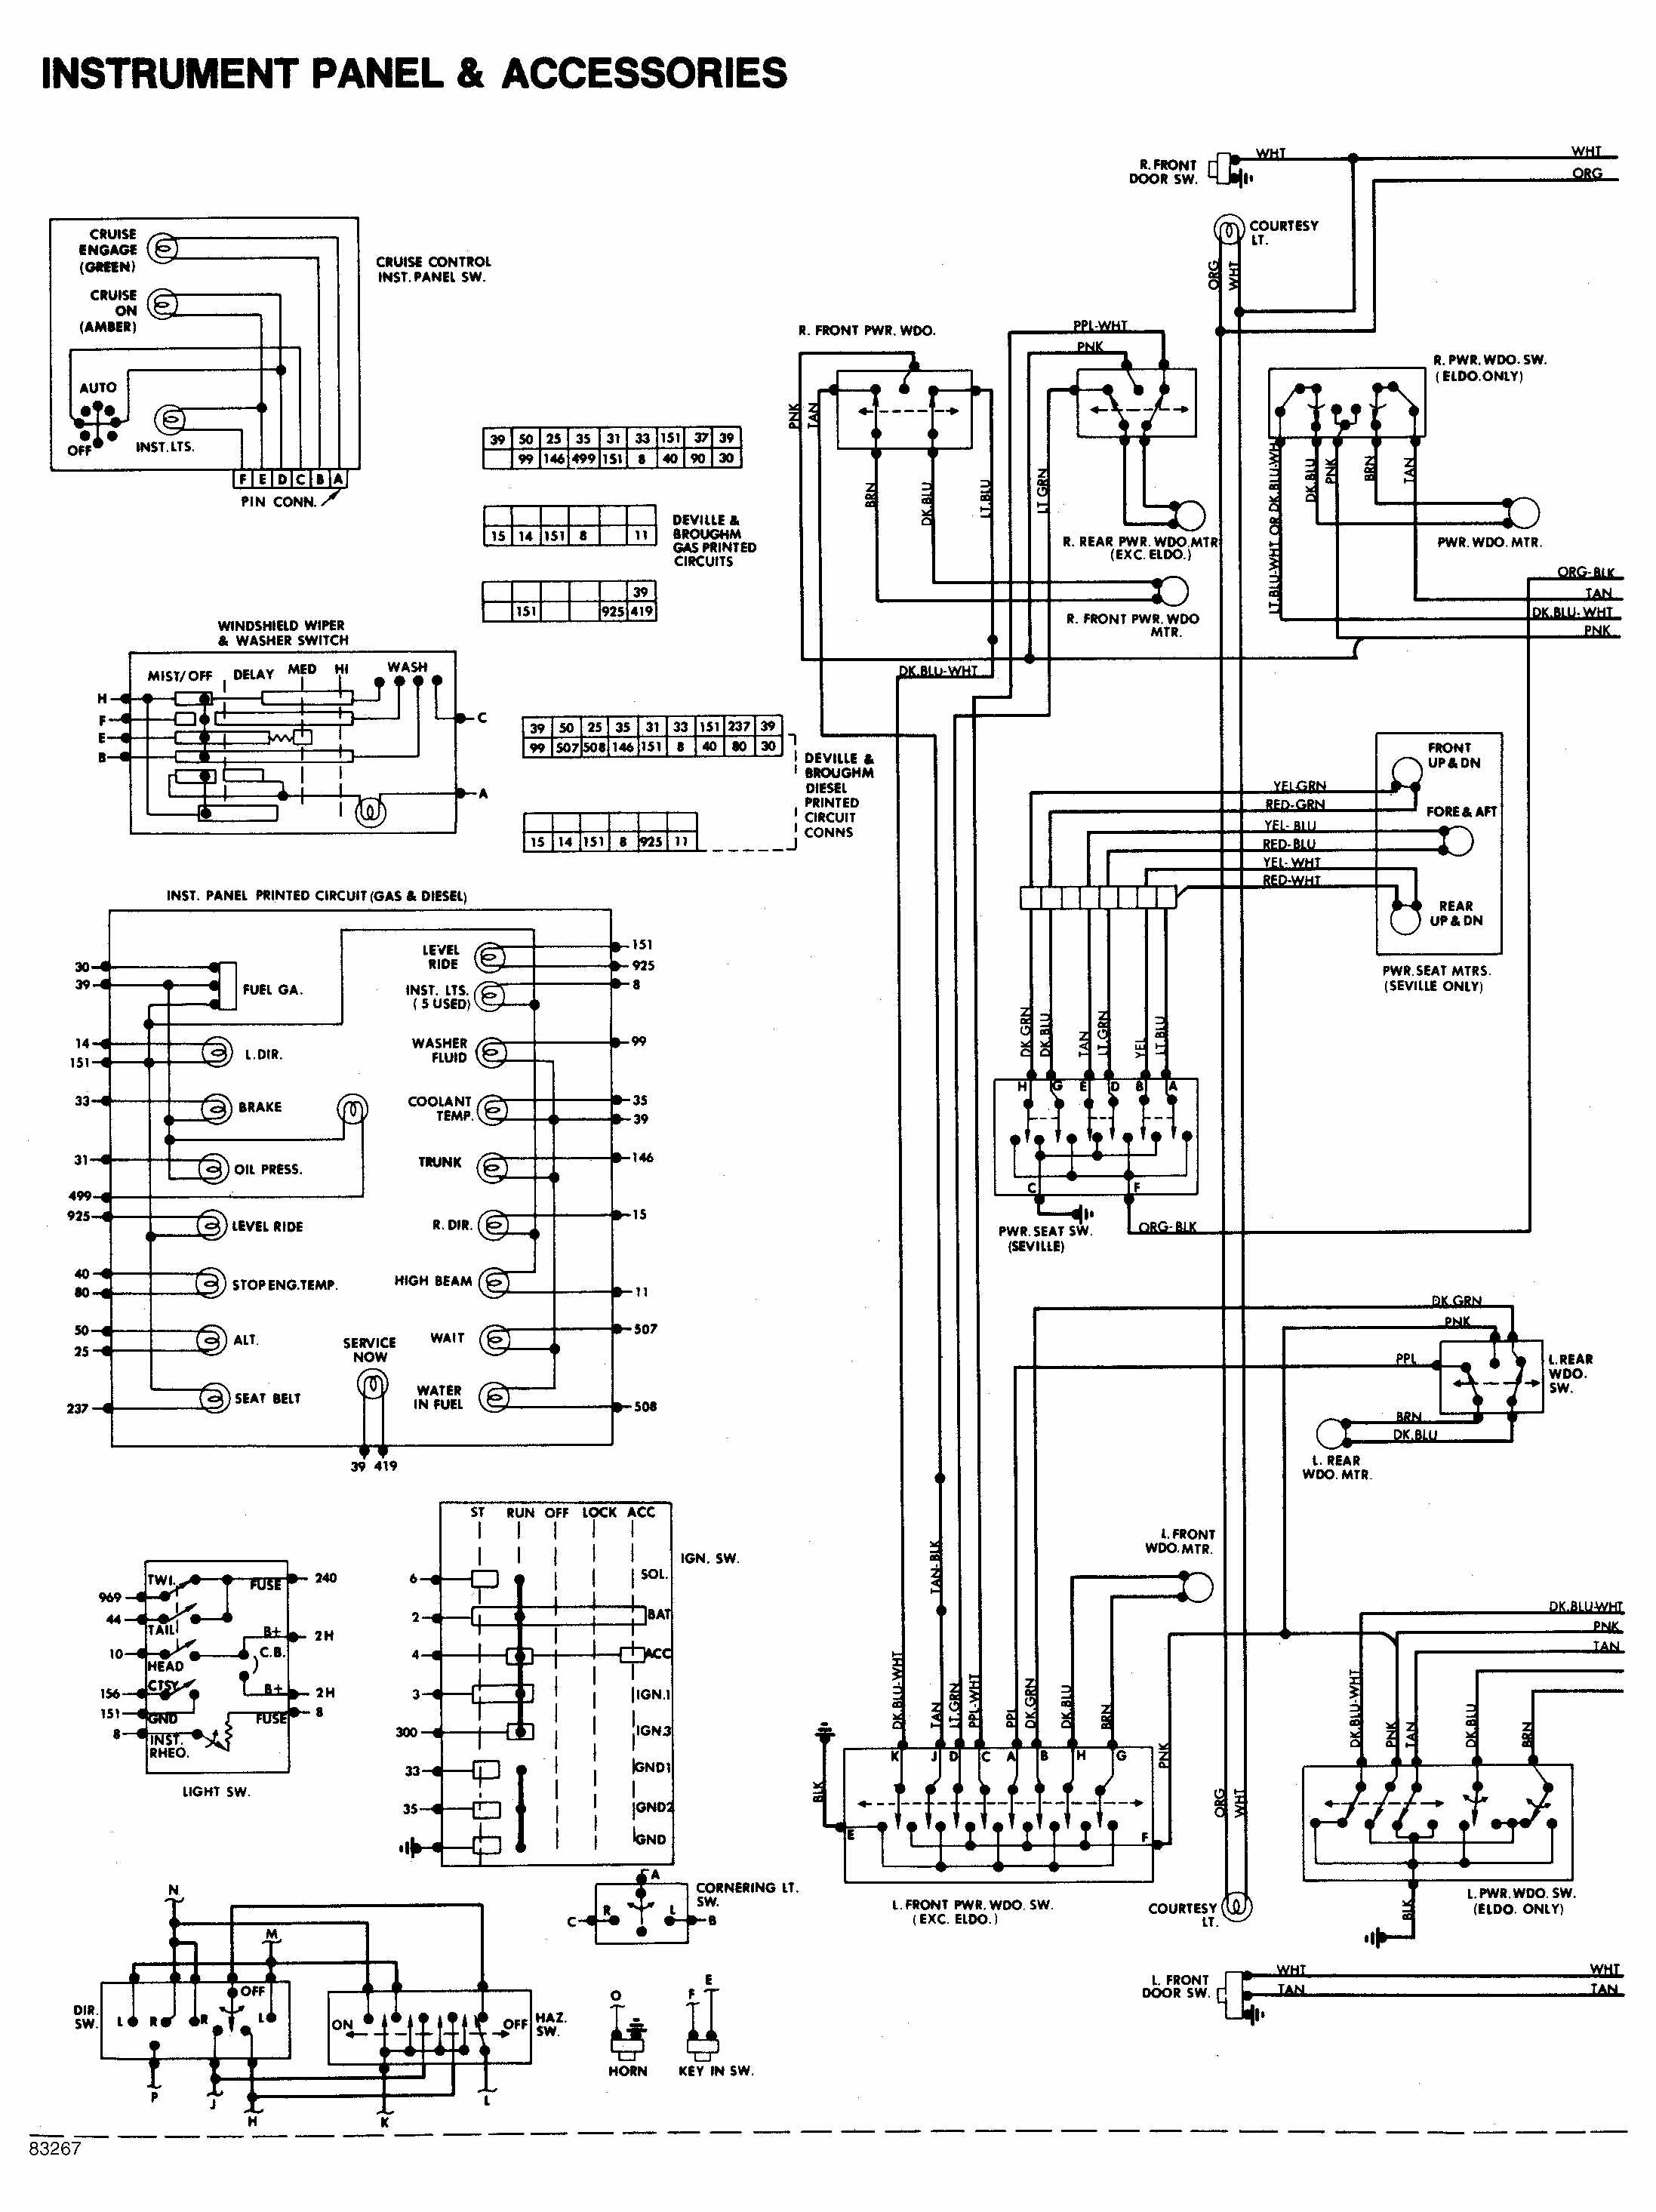 2006 Ford Mustang Window Wiring Diagram Fuse Librarychevy Diagrams Rh Wizard Com Power